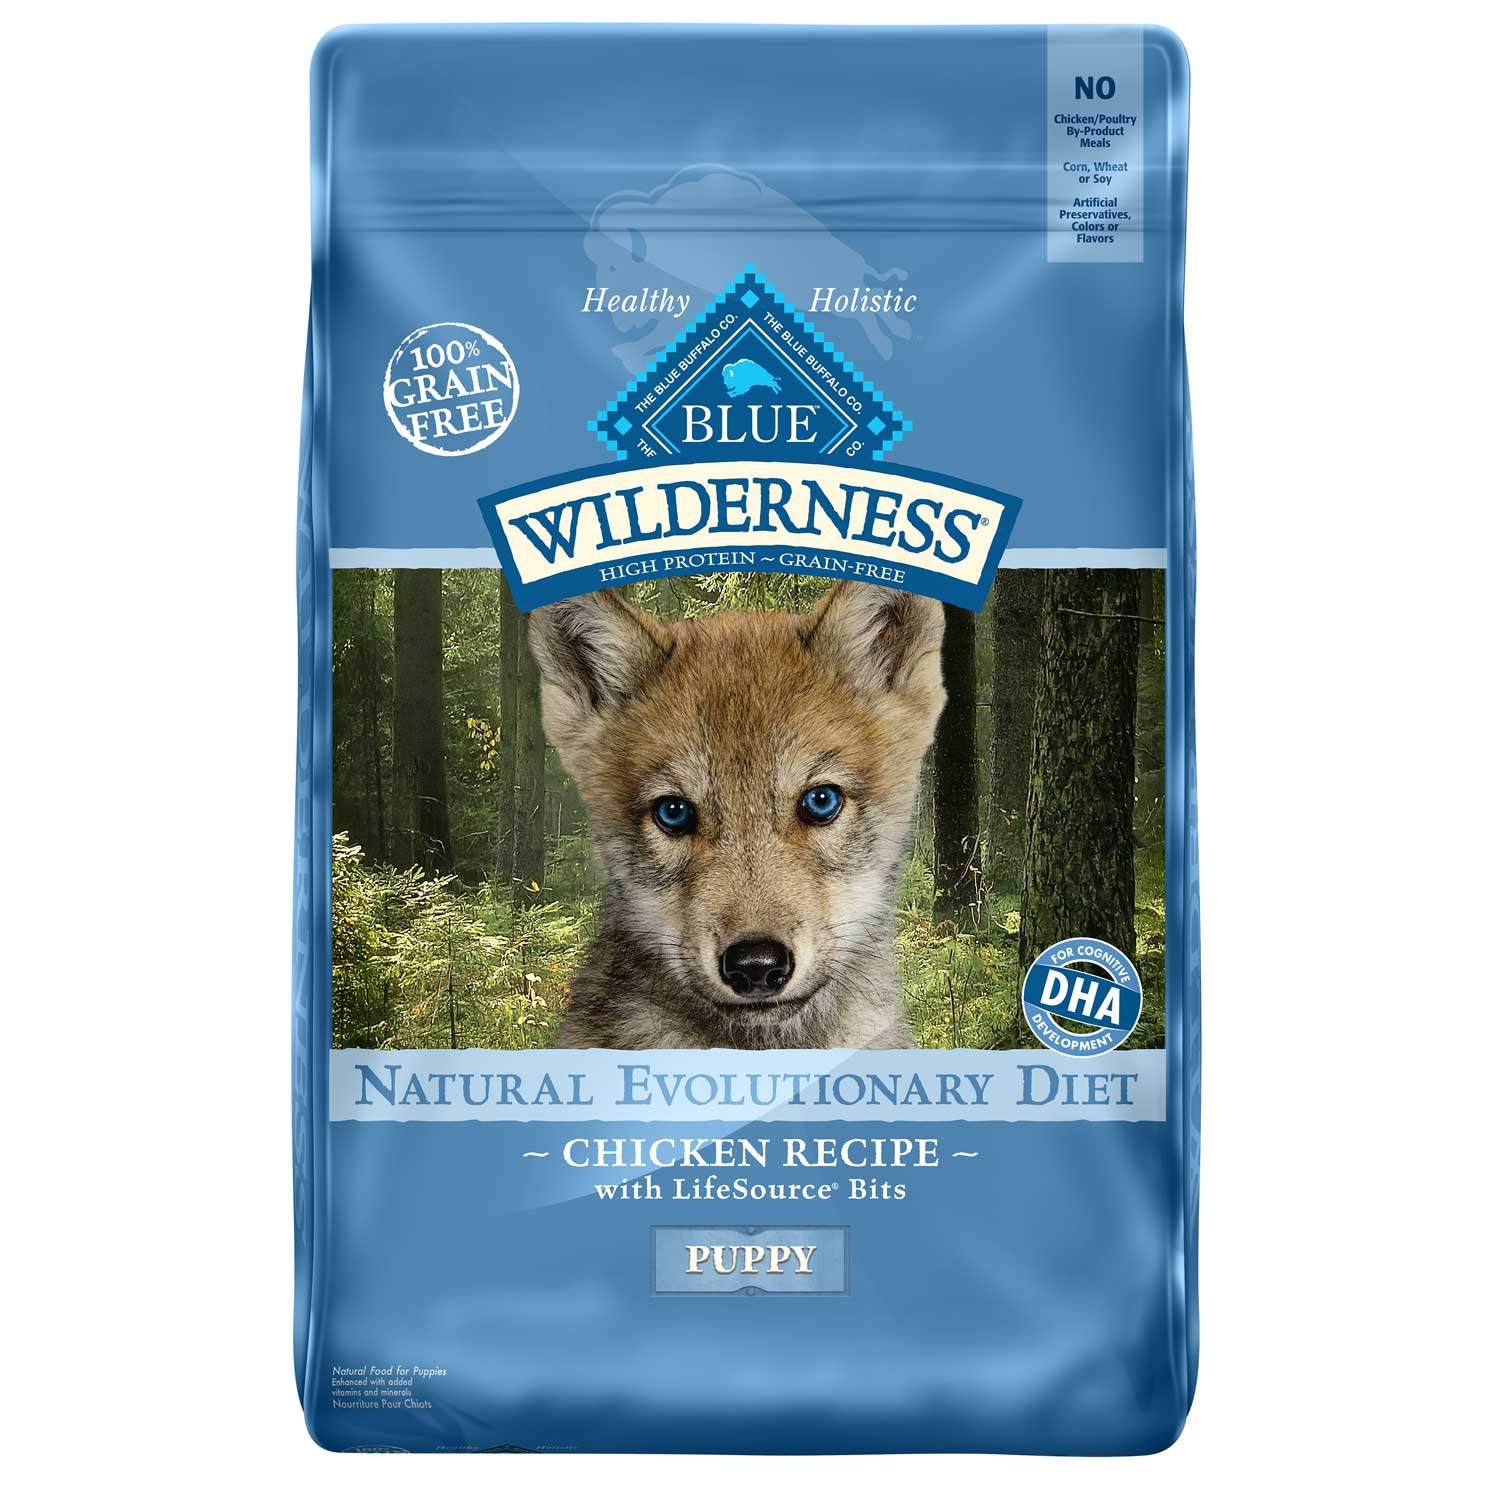 Blue Buffalo Dog Food Price Comparison